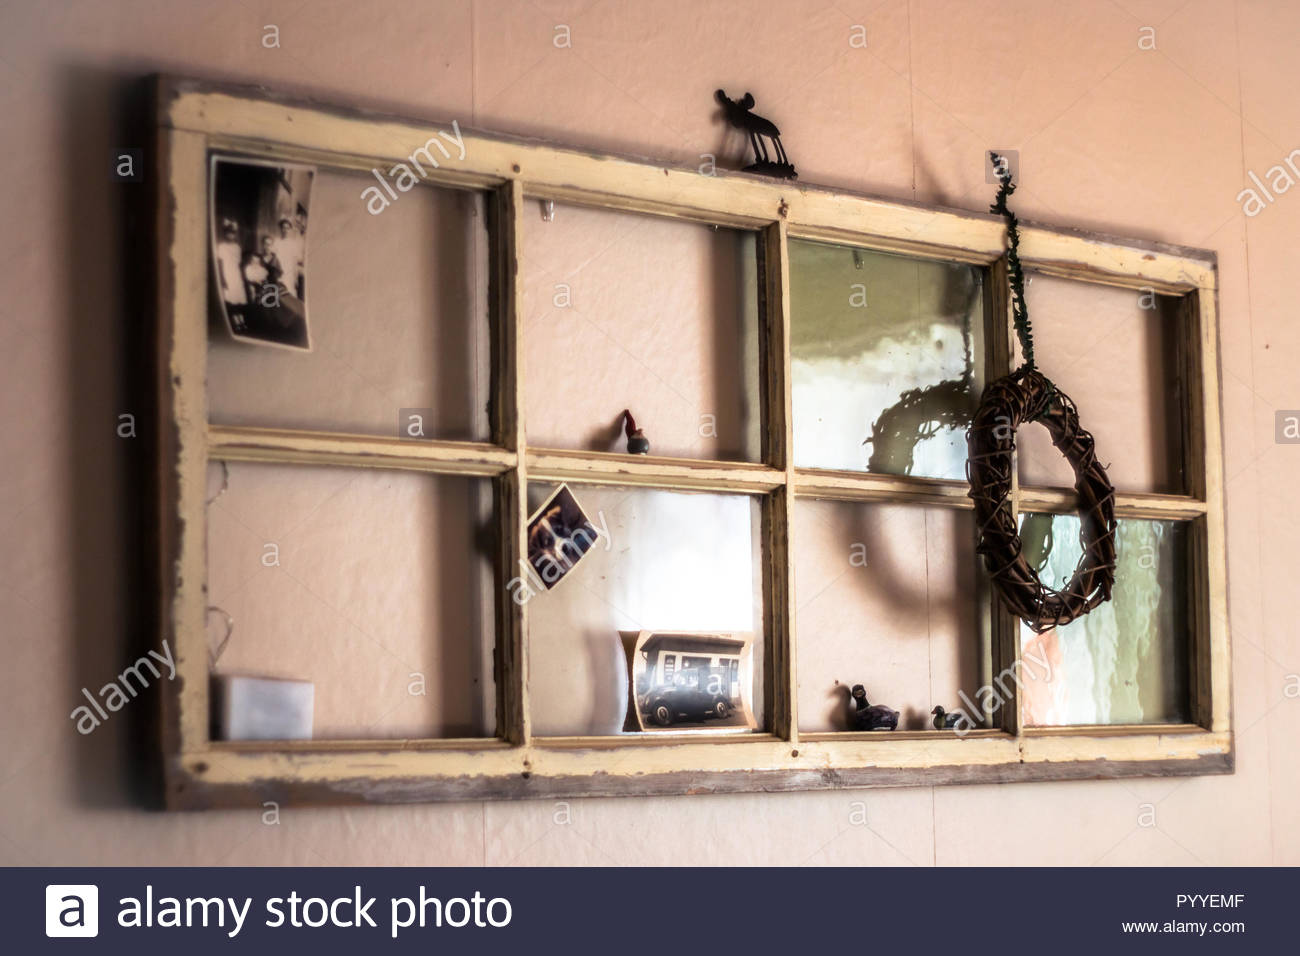 Old Window Used As A Wall Decoration Stock Photo 223724383